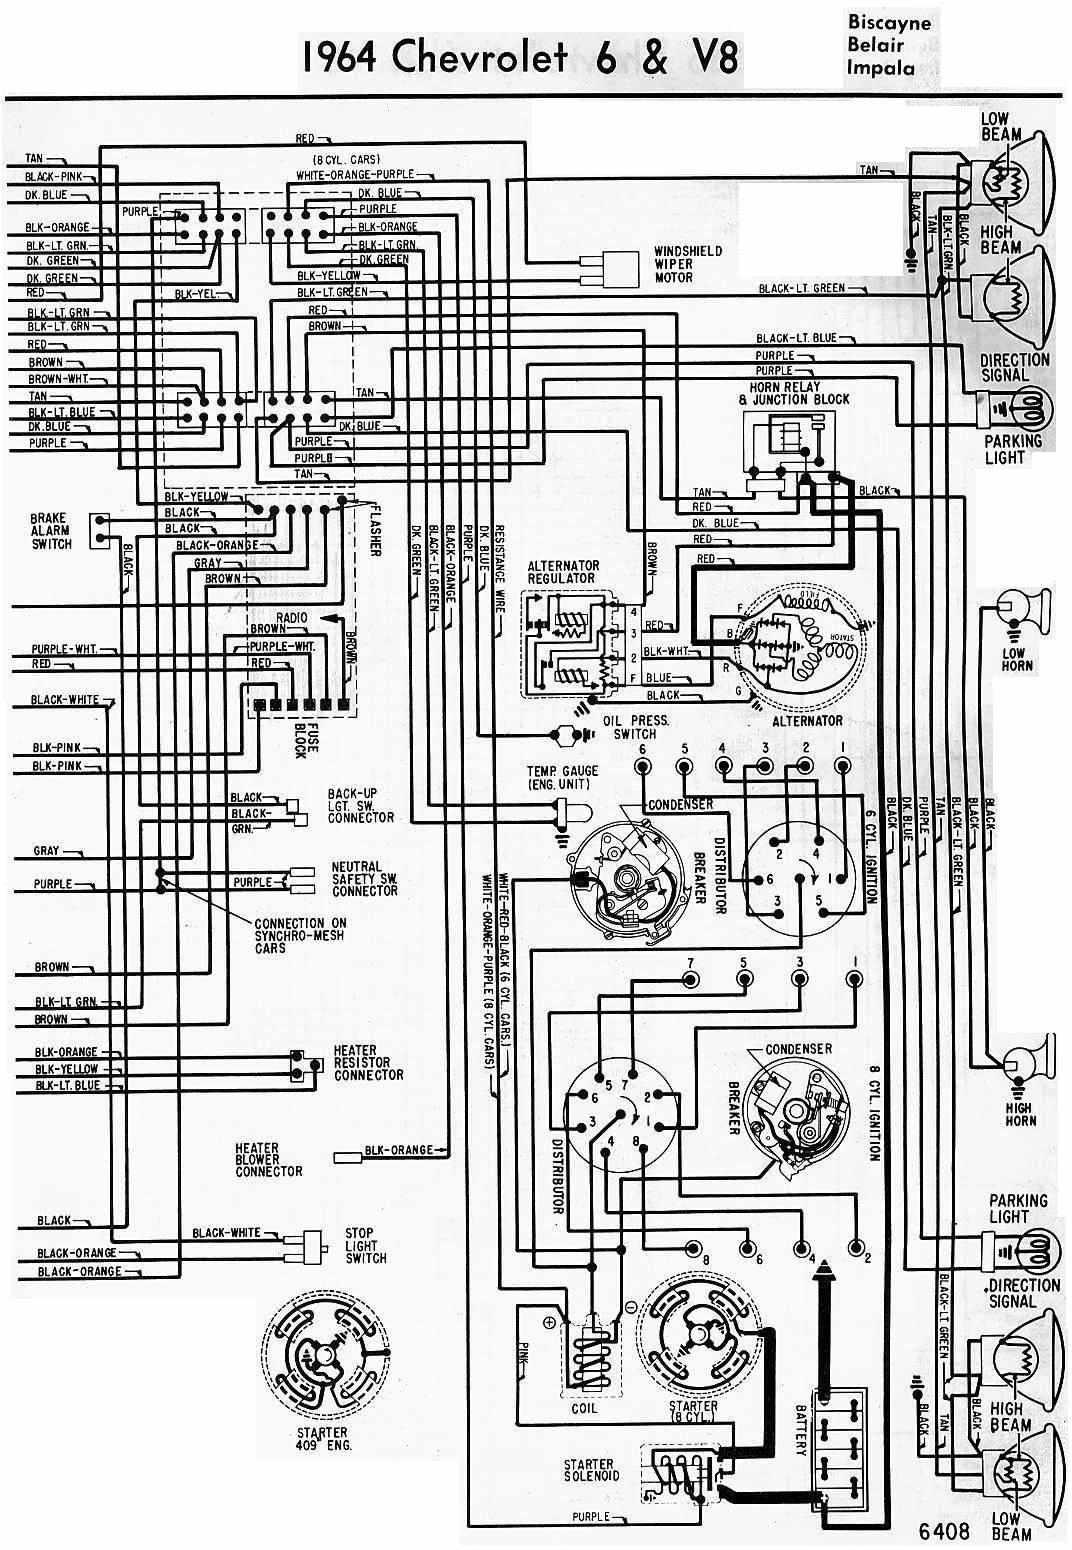 Electrical+Wiring+Diagram+Of+1964+Chevrolet+6+And+V8 1964 bel air wire diagram colors incorrect chevytalk free 1967 Impala Wiring Diagram at webbmarketing.co